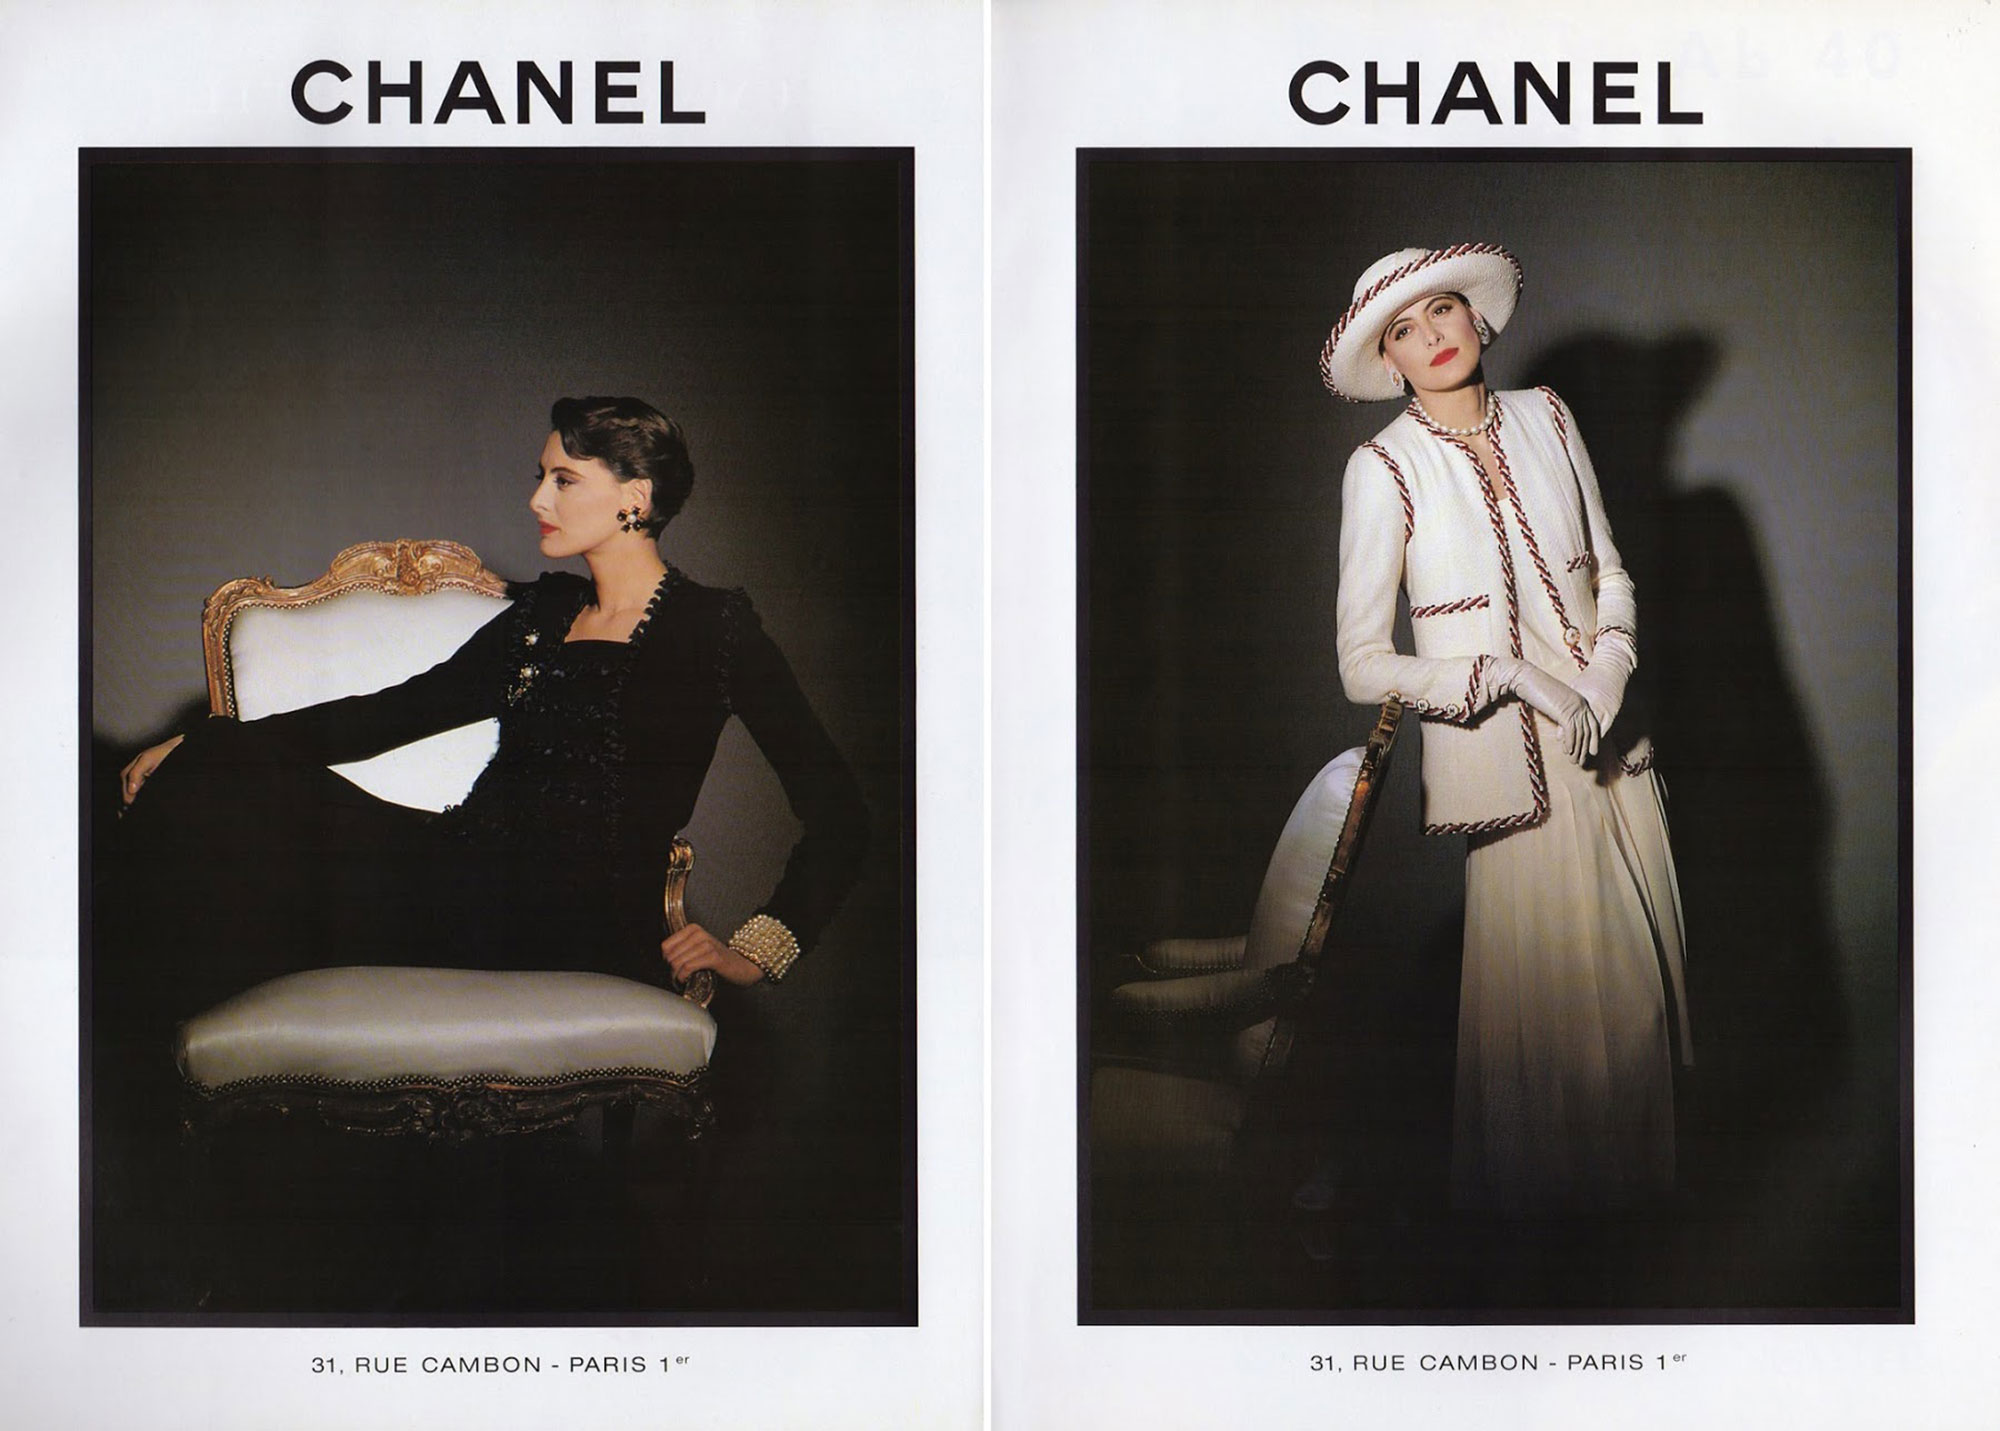 THE CHANGING FACES OF FASHION